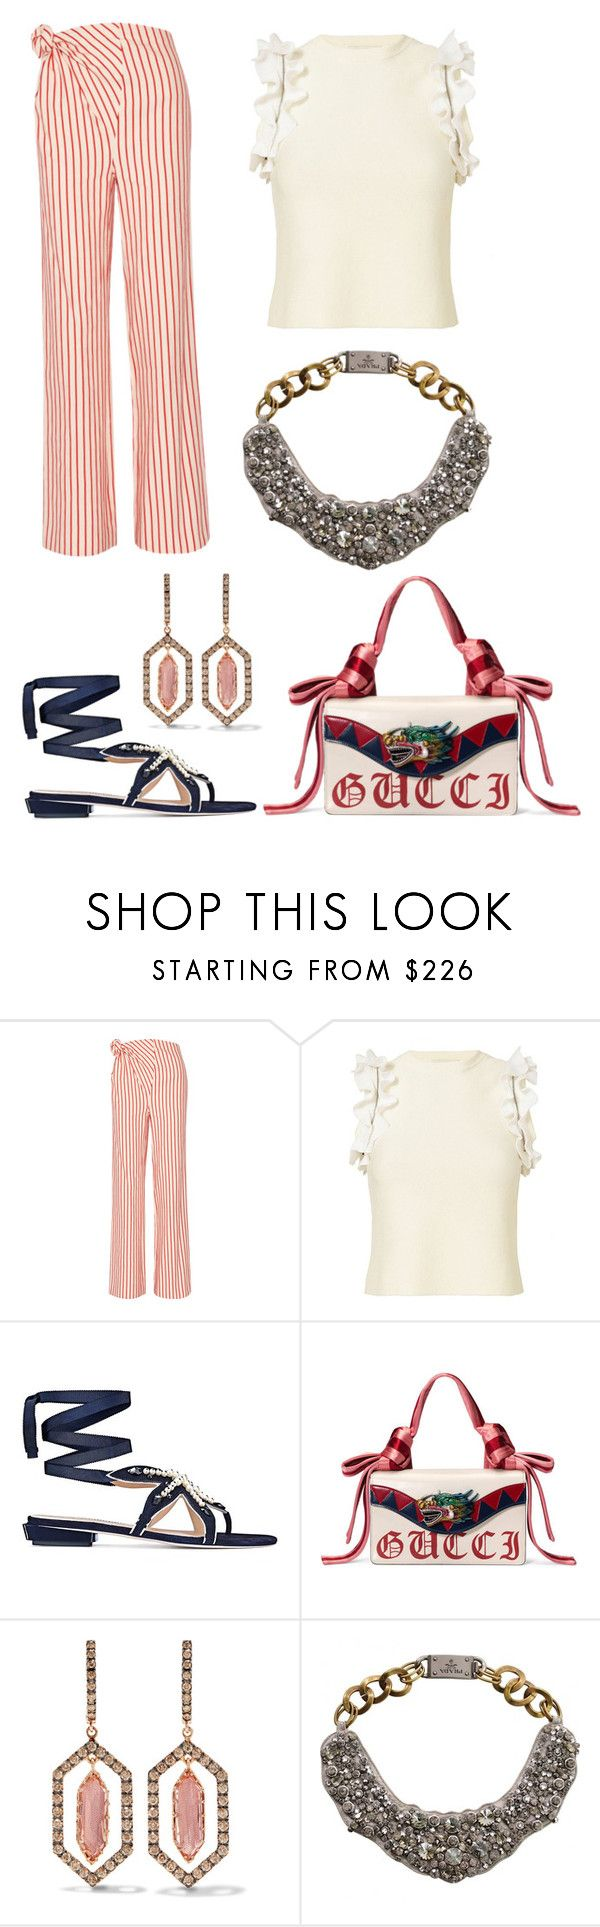 """""""Untitled #2164"""" by filipaloves ❤ liked on Polyvore featuring Rosie Assoulin, 3.1 Phillip Lim, Tory Burch, Gucci, Larkspur & Hawk and Prada"""